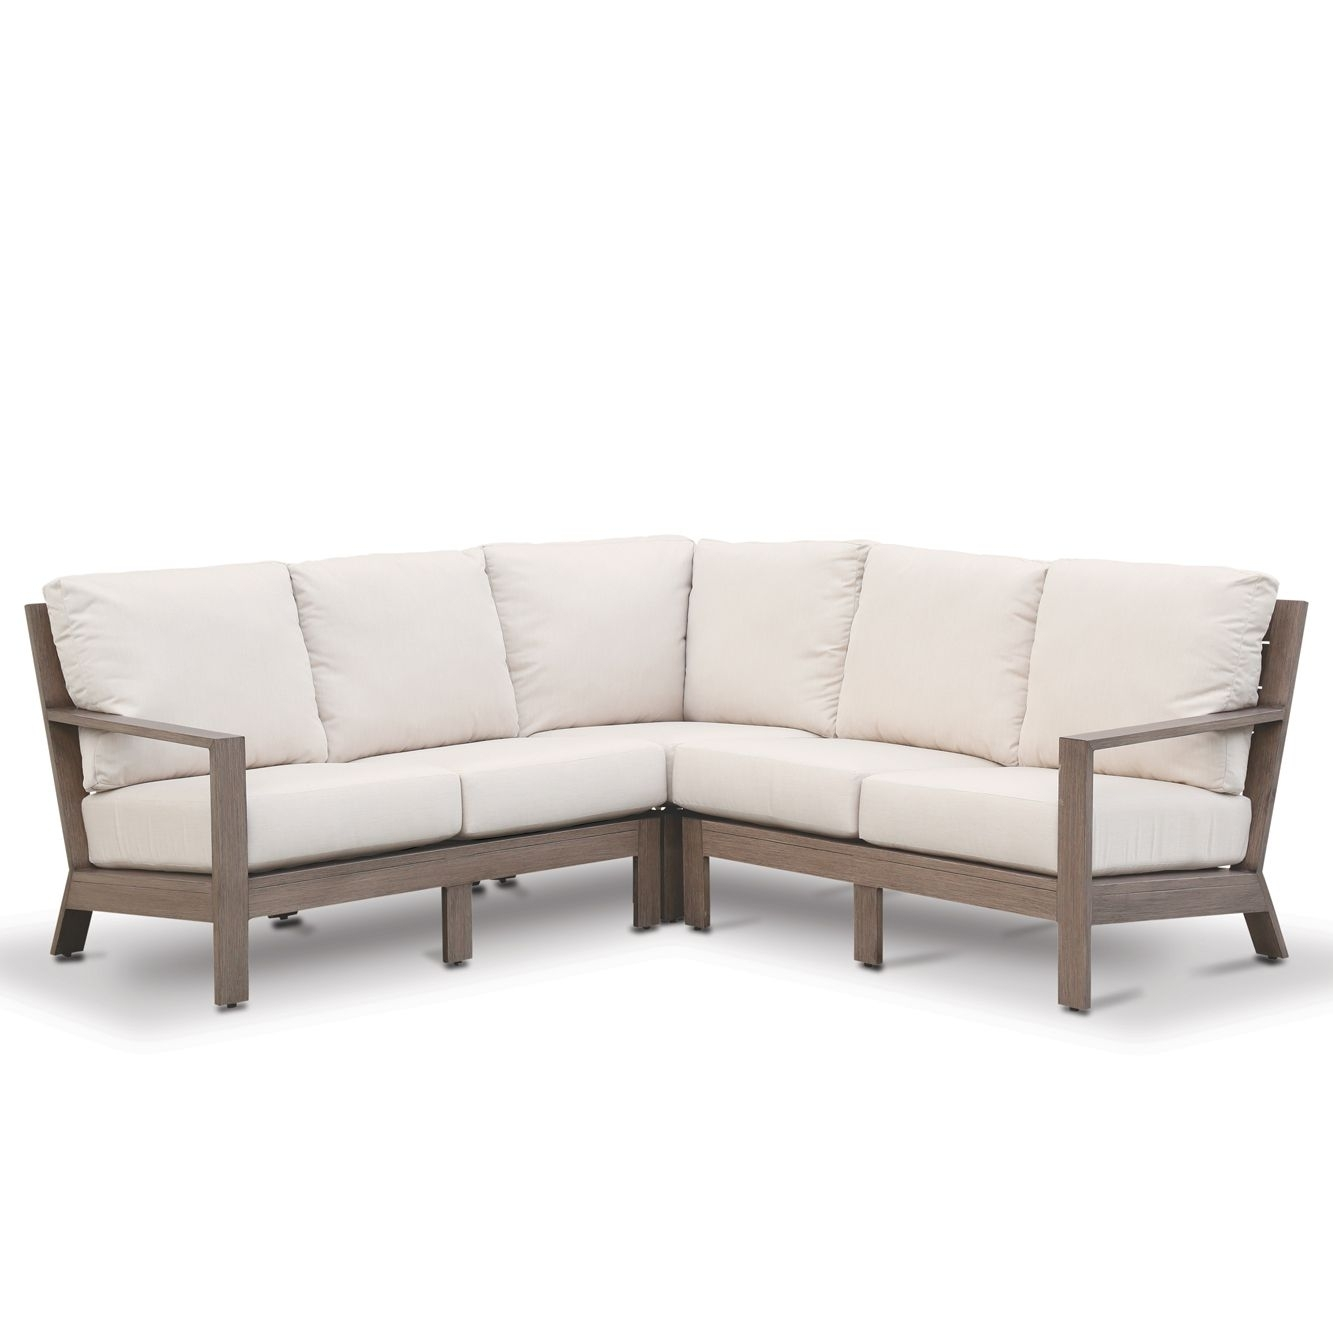 Outdoor Pompeii 3 Piece Sectional with regard to Whitley 3 Piece Sectionals By Nate Berkus And Jeremiah Brent